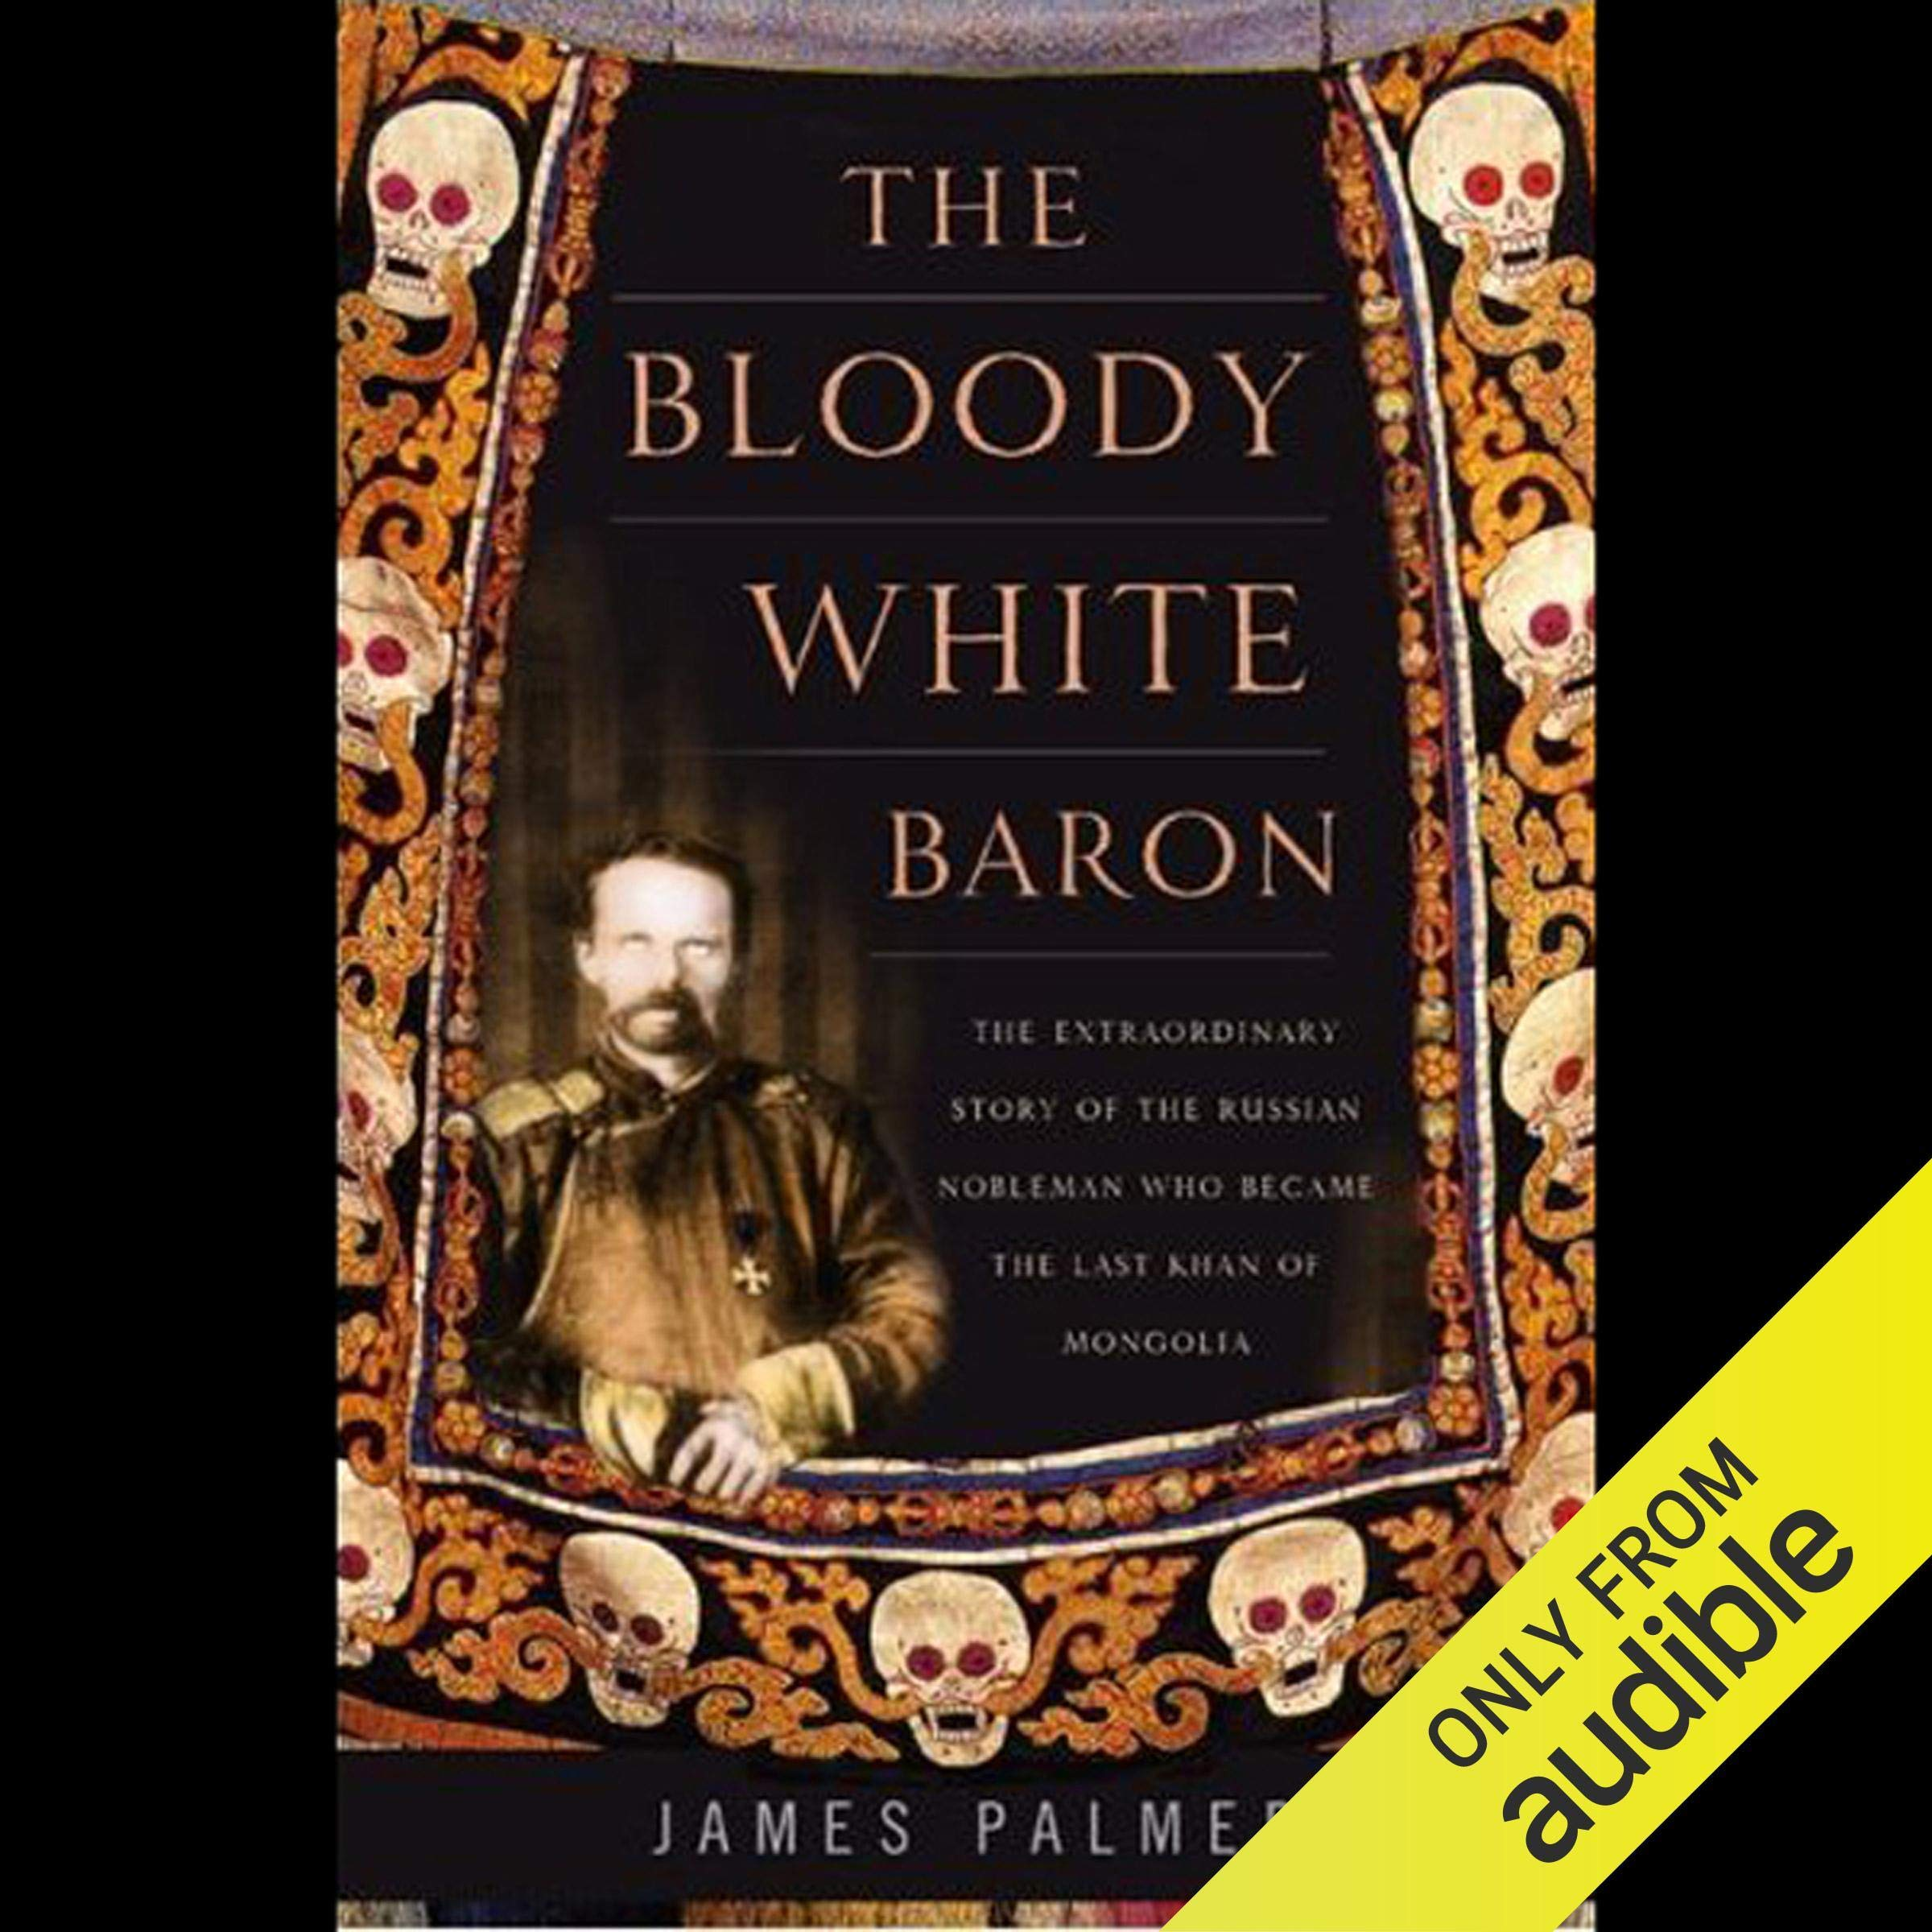 The Bloody White Baron: The Russian Nobleman Who Became the Last Khan of Mongolia